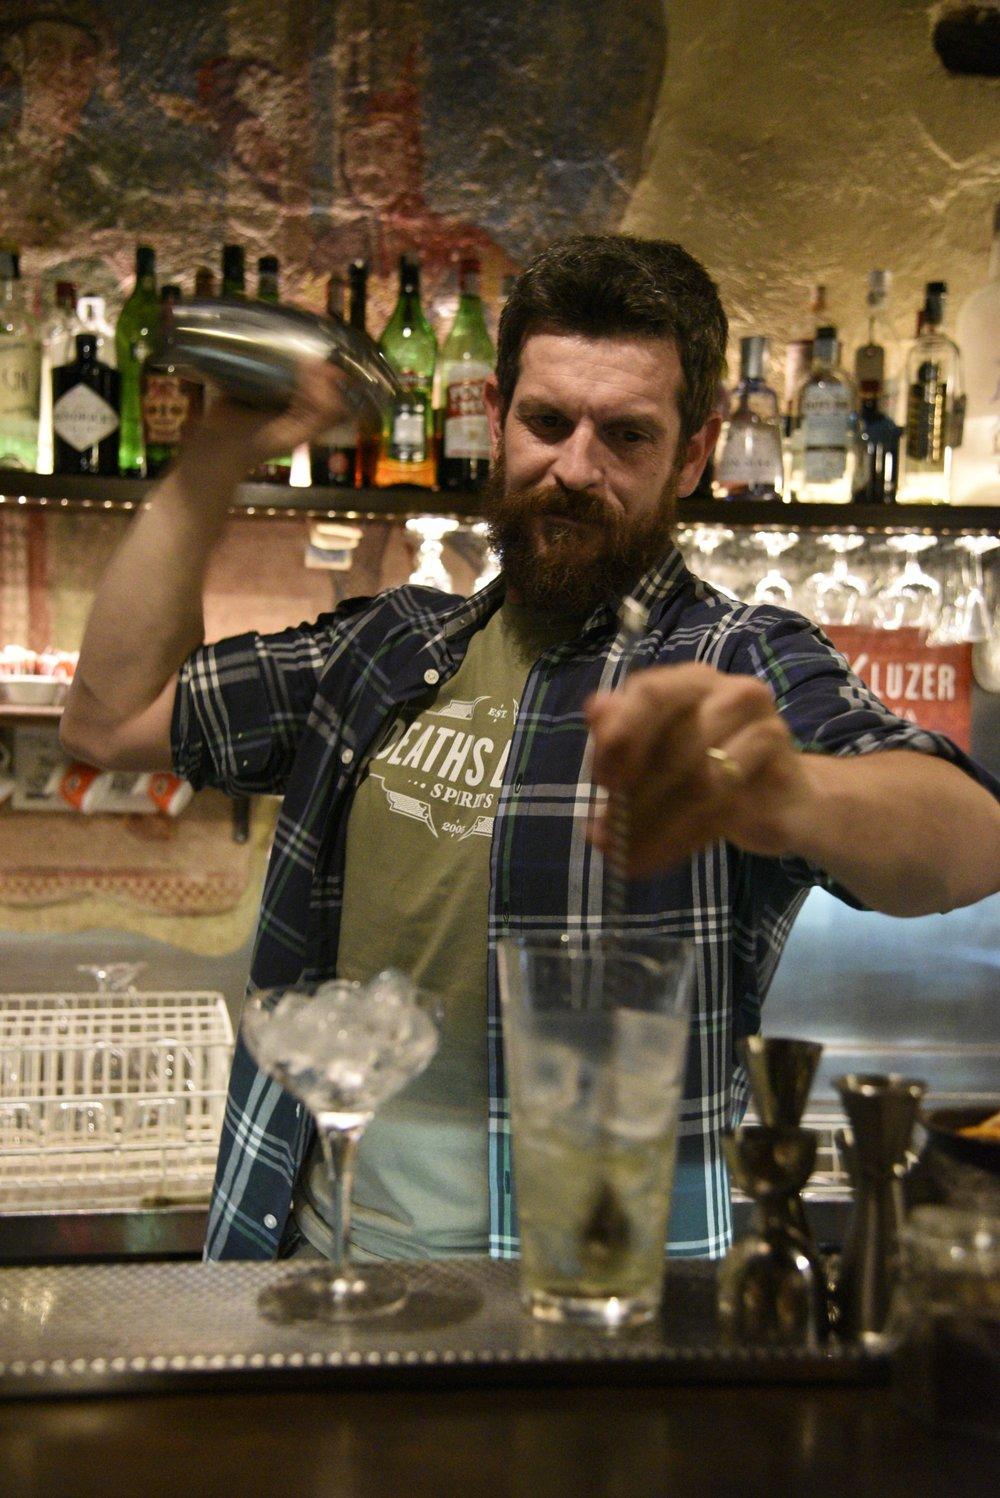 Pier prepares some Death's Door gin-based cocktails